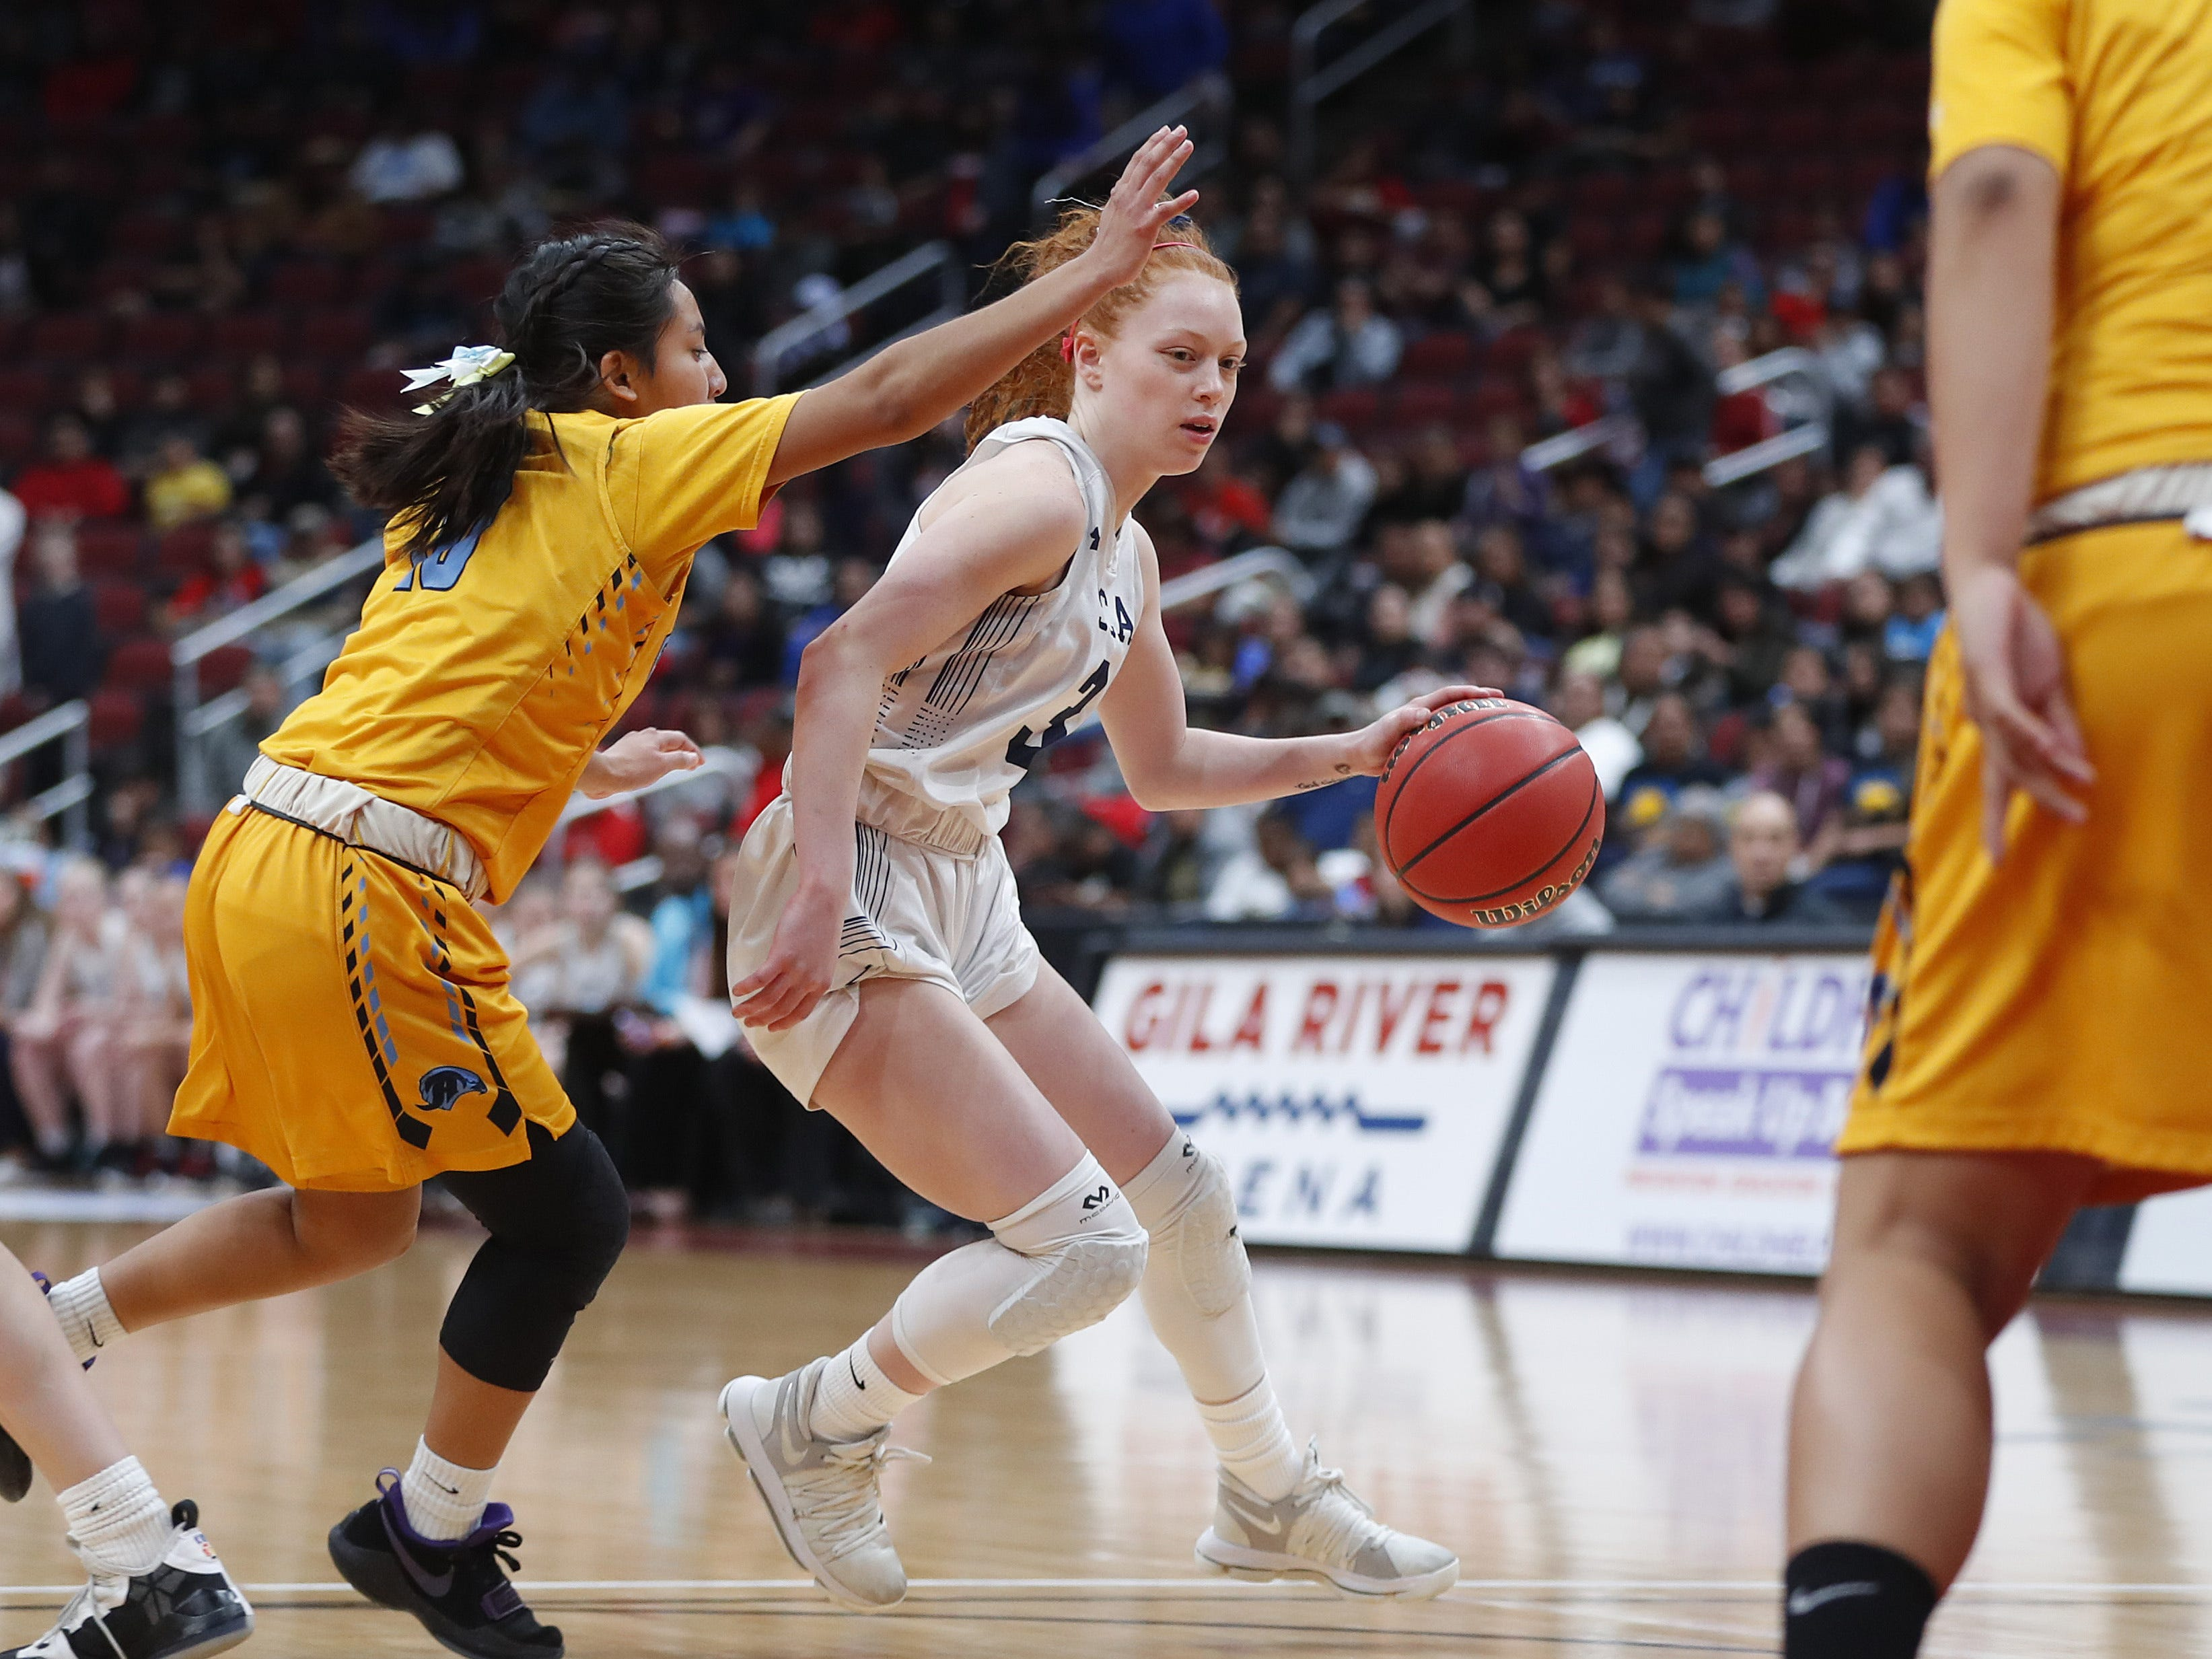 Scottsdale Christian's Kylie Hearn (3) dribbles against Alchesay's Denisia Massey (10) during the first half of the 2A girls basketball state championship game at Gila River Arena in Glendale, Ariz. on February 23, 2019.